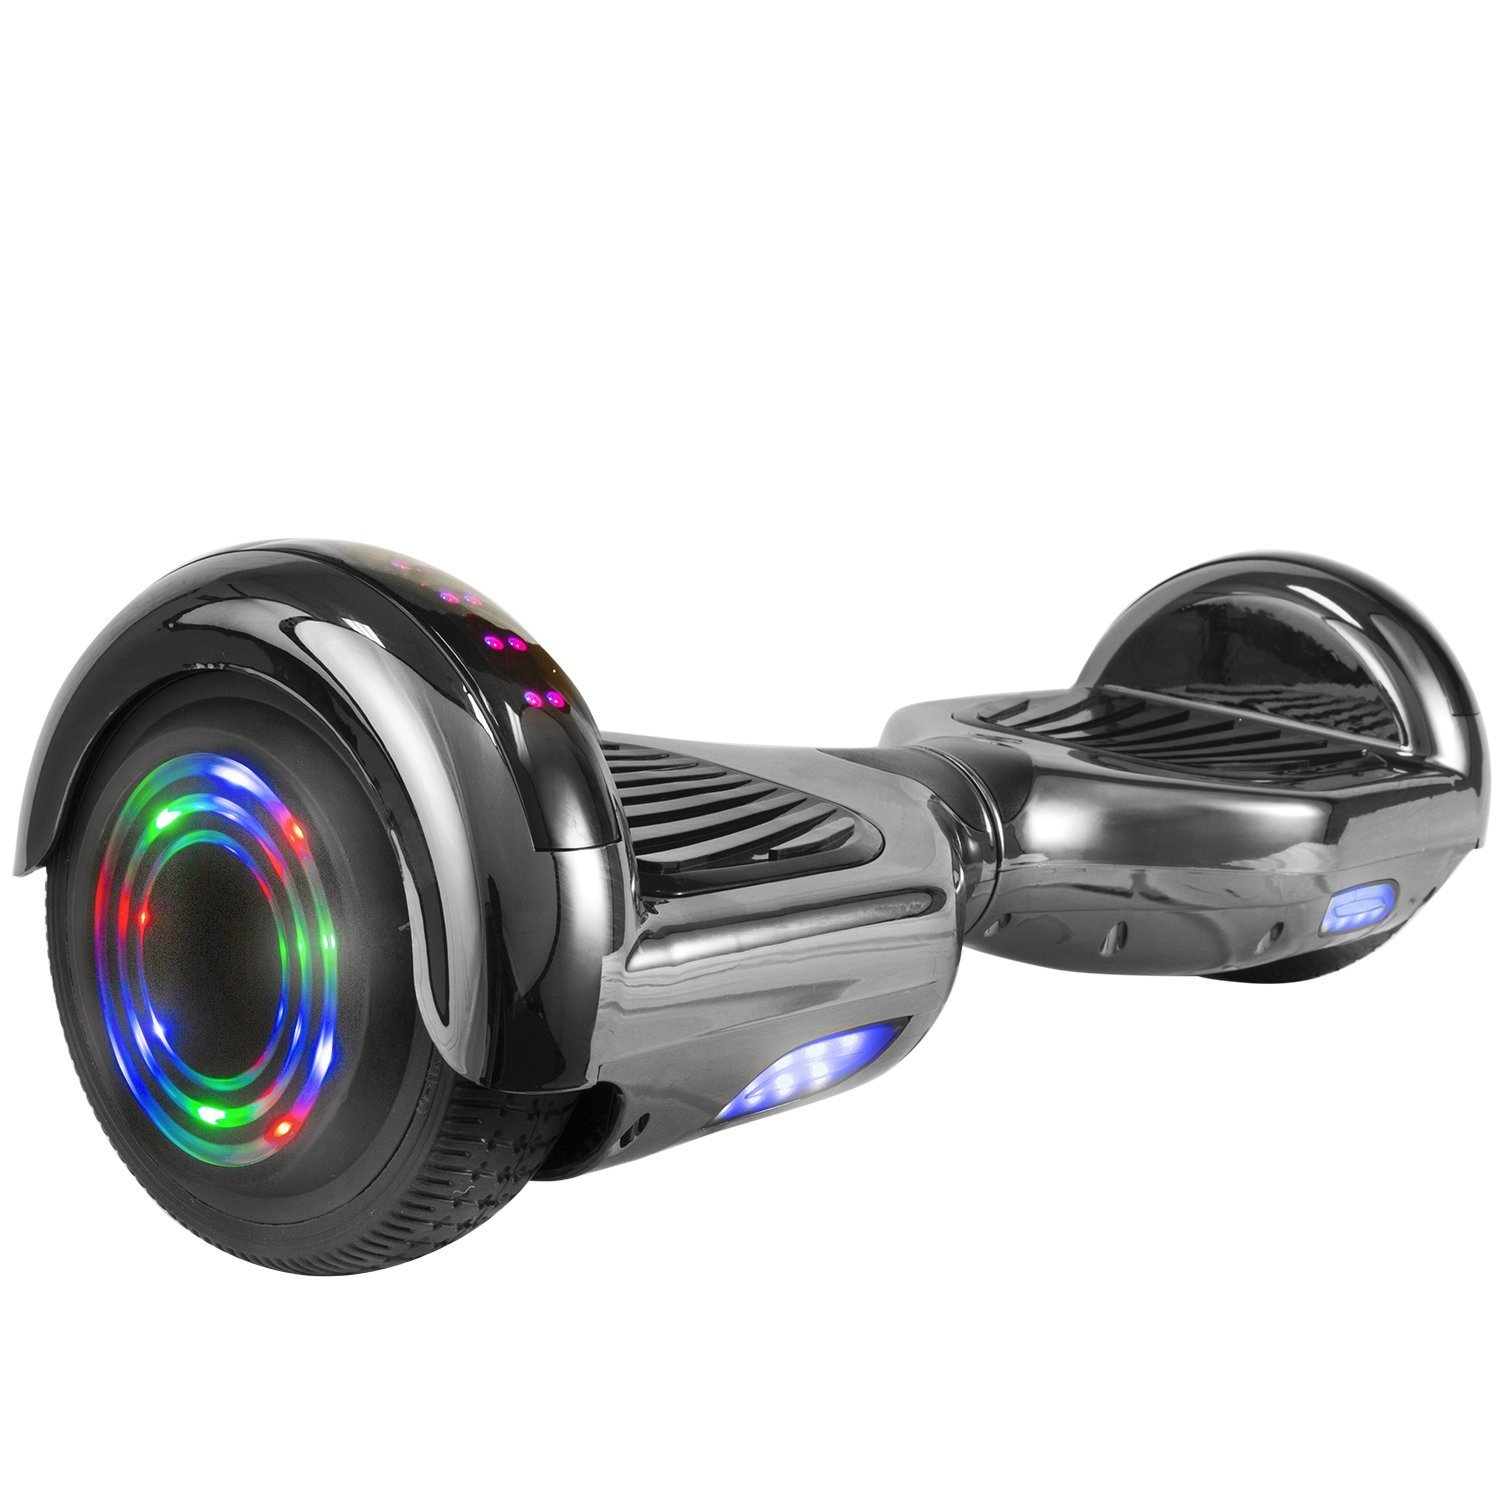 WorryFree Gadgets Chrome Self-Balancing Hoverboard w/Bluetooth Speaker, UL2272 Certified - LED Lights and Light-up Wheels